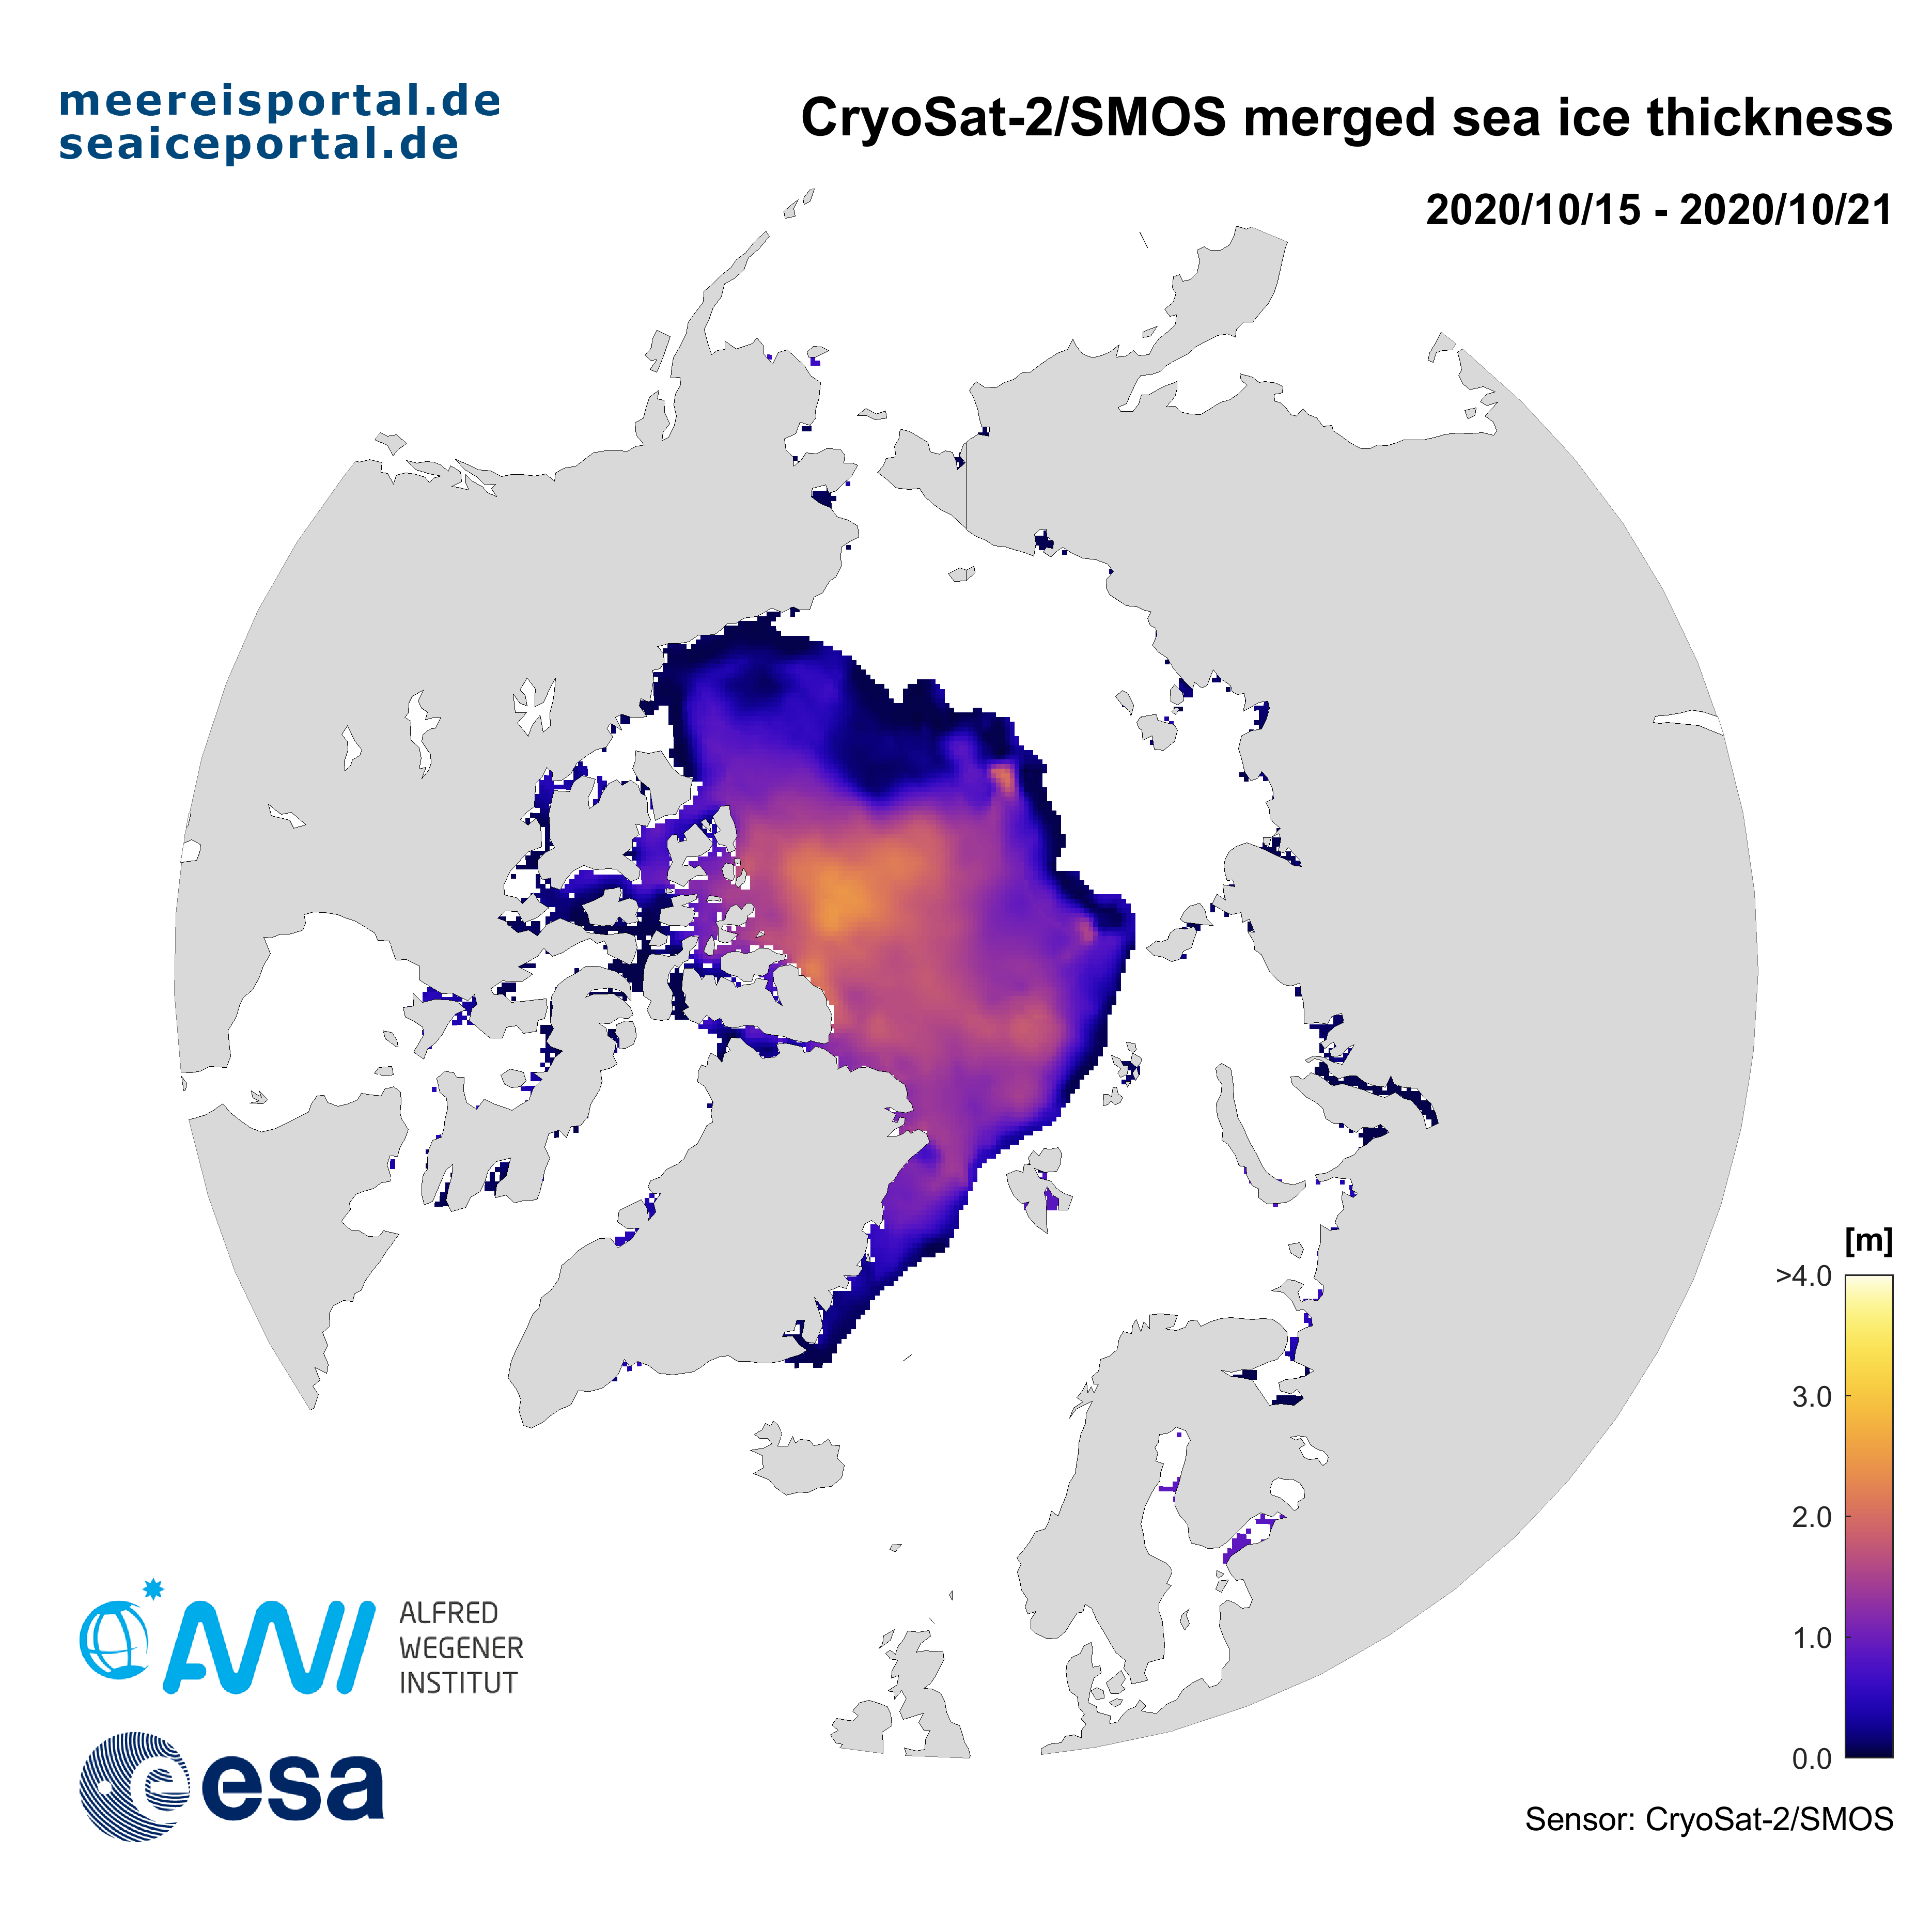 CryoSat-2/SMOS (ESA) combination map of the weekly arctic sea ice thickness from 15.10.2020